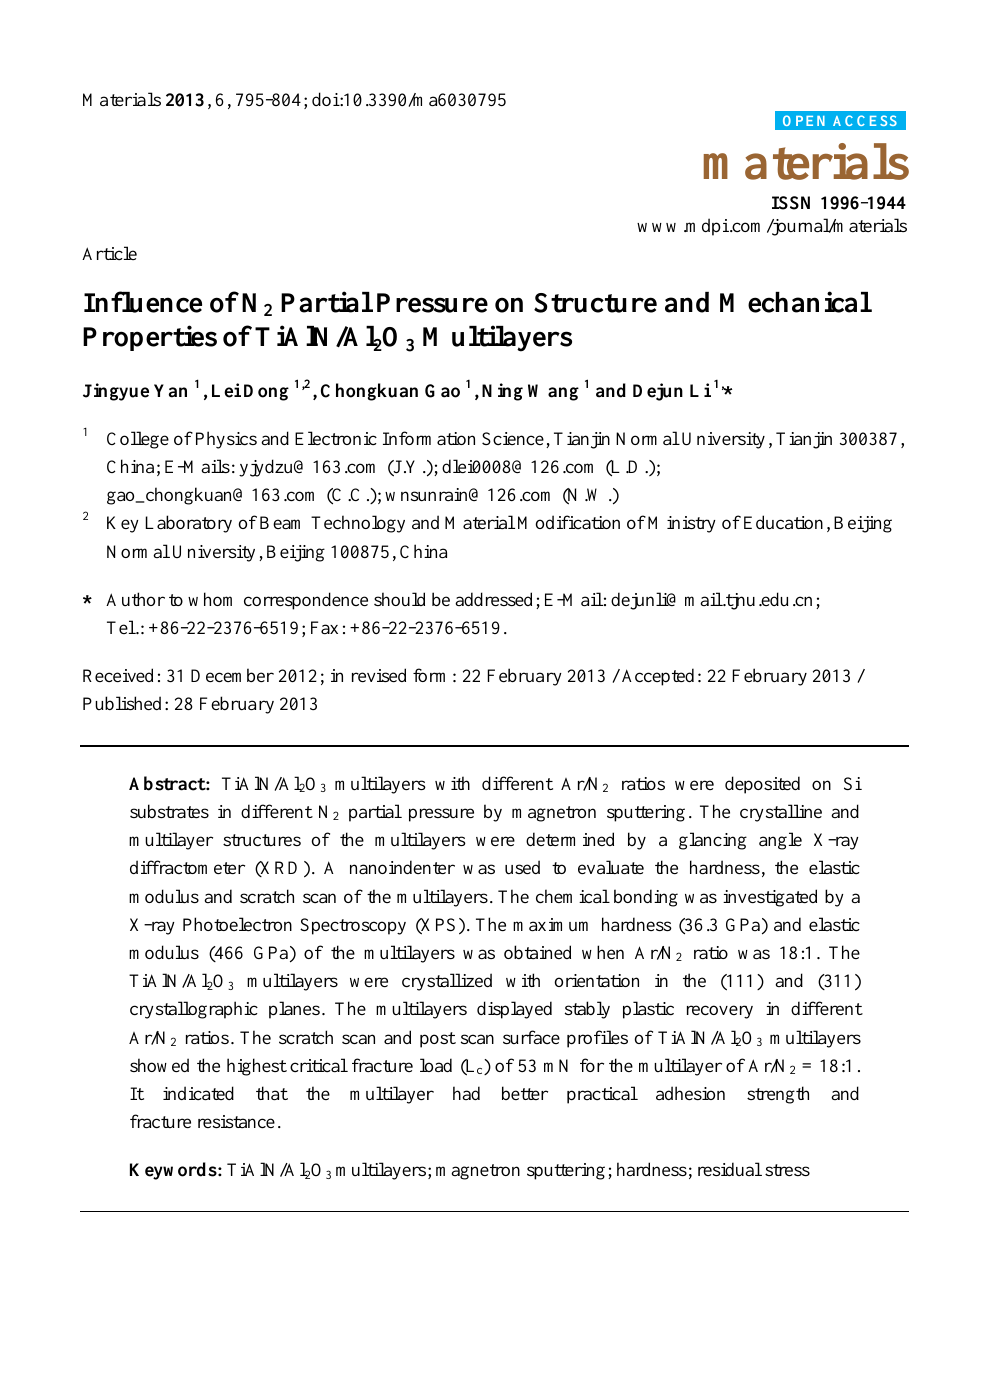 Influence of N2 Partial Pressure on Structure and Mechanical